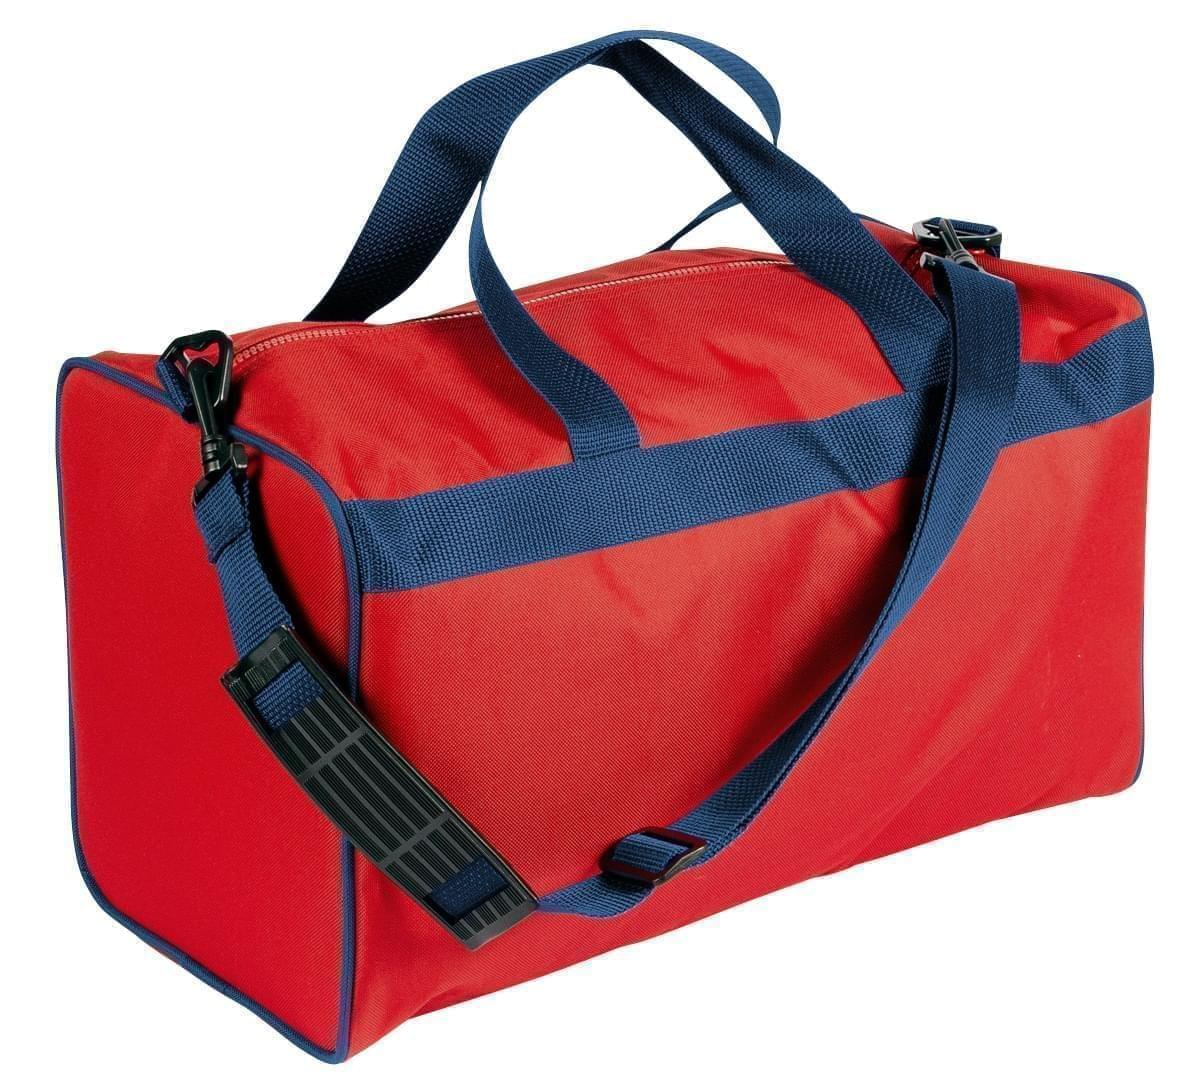 USA Made Nylon Poly Weekend Duffles, Red-Navy, WLKX31AAZZ